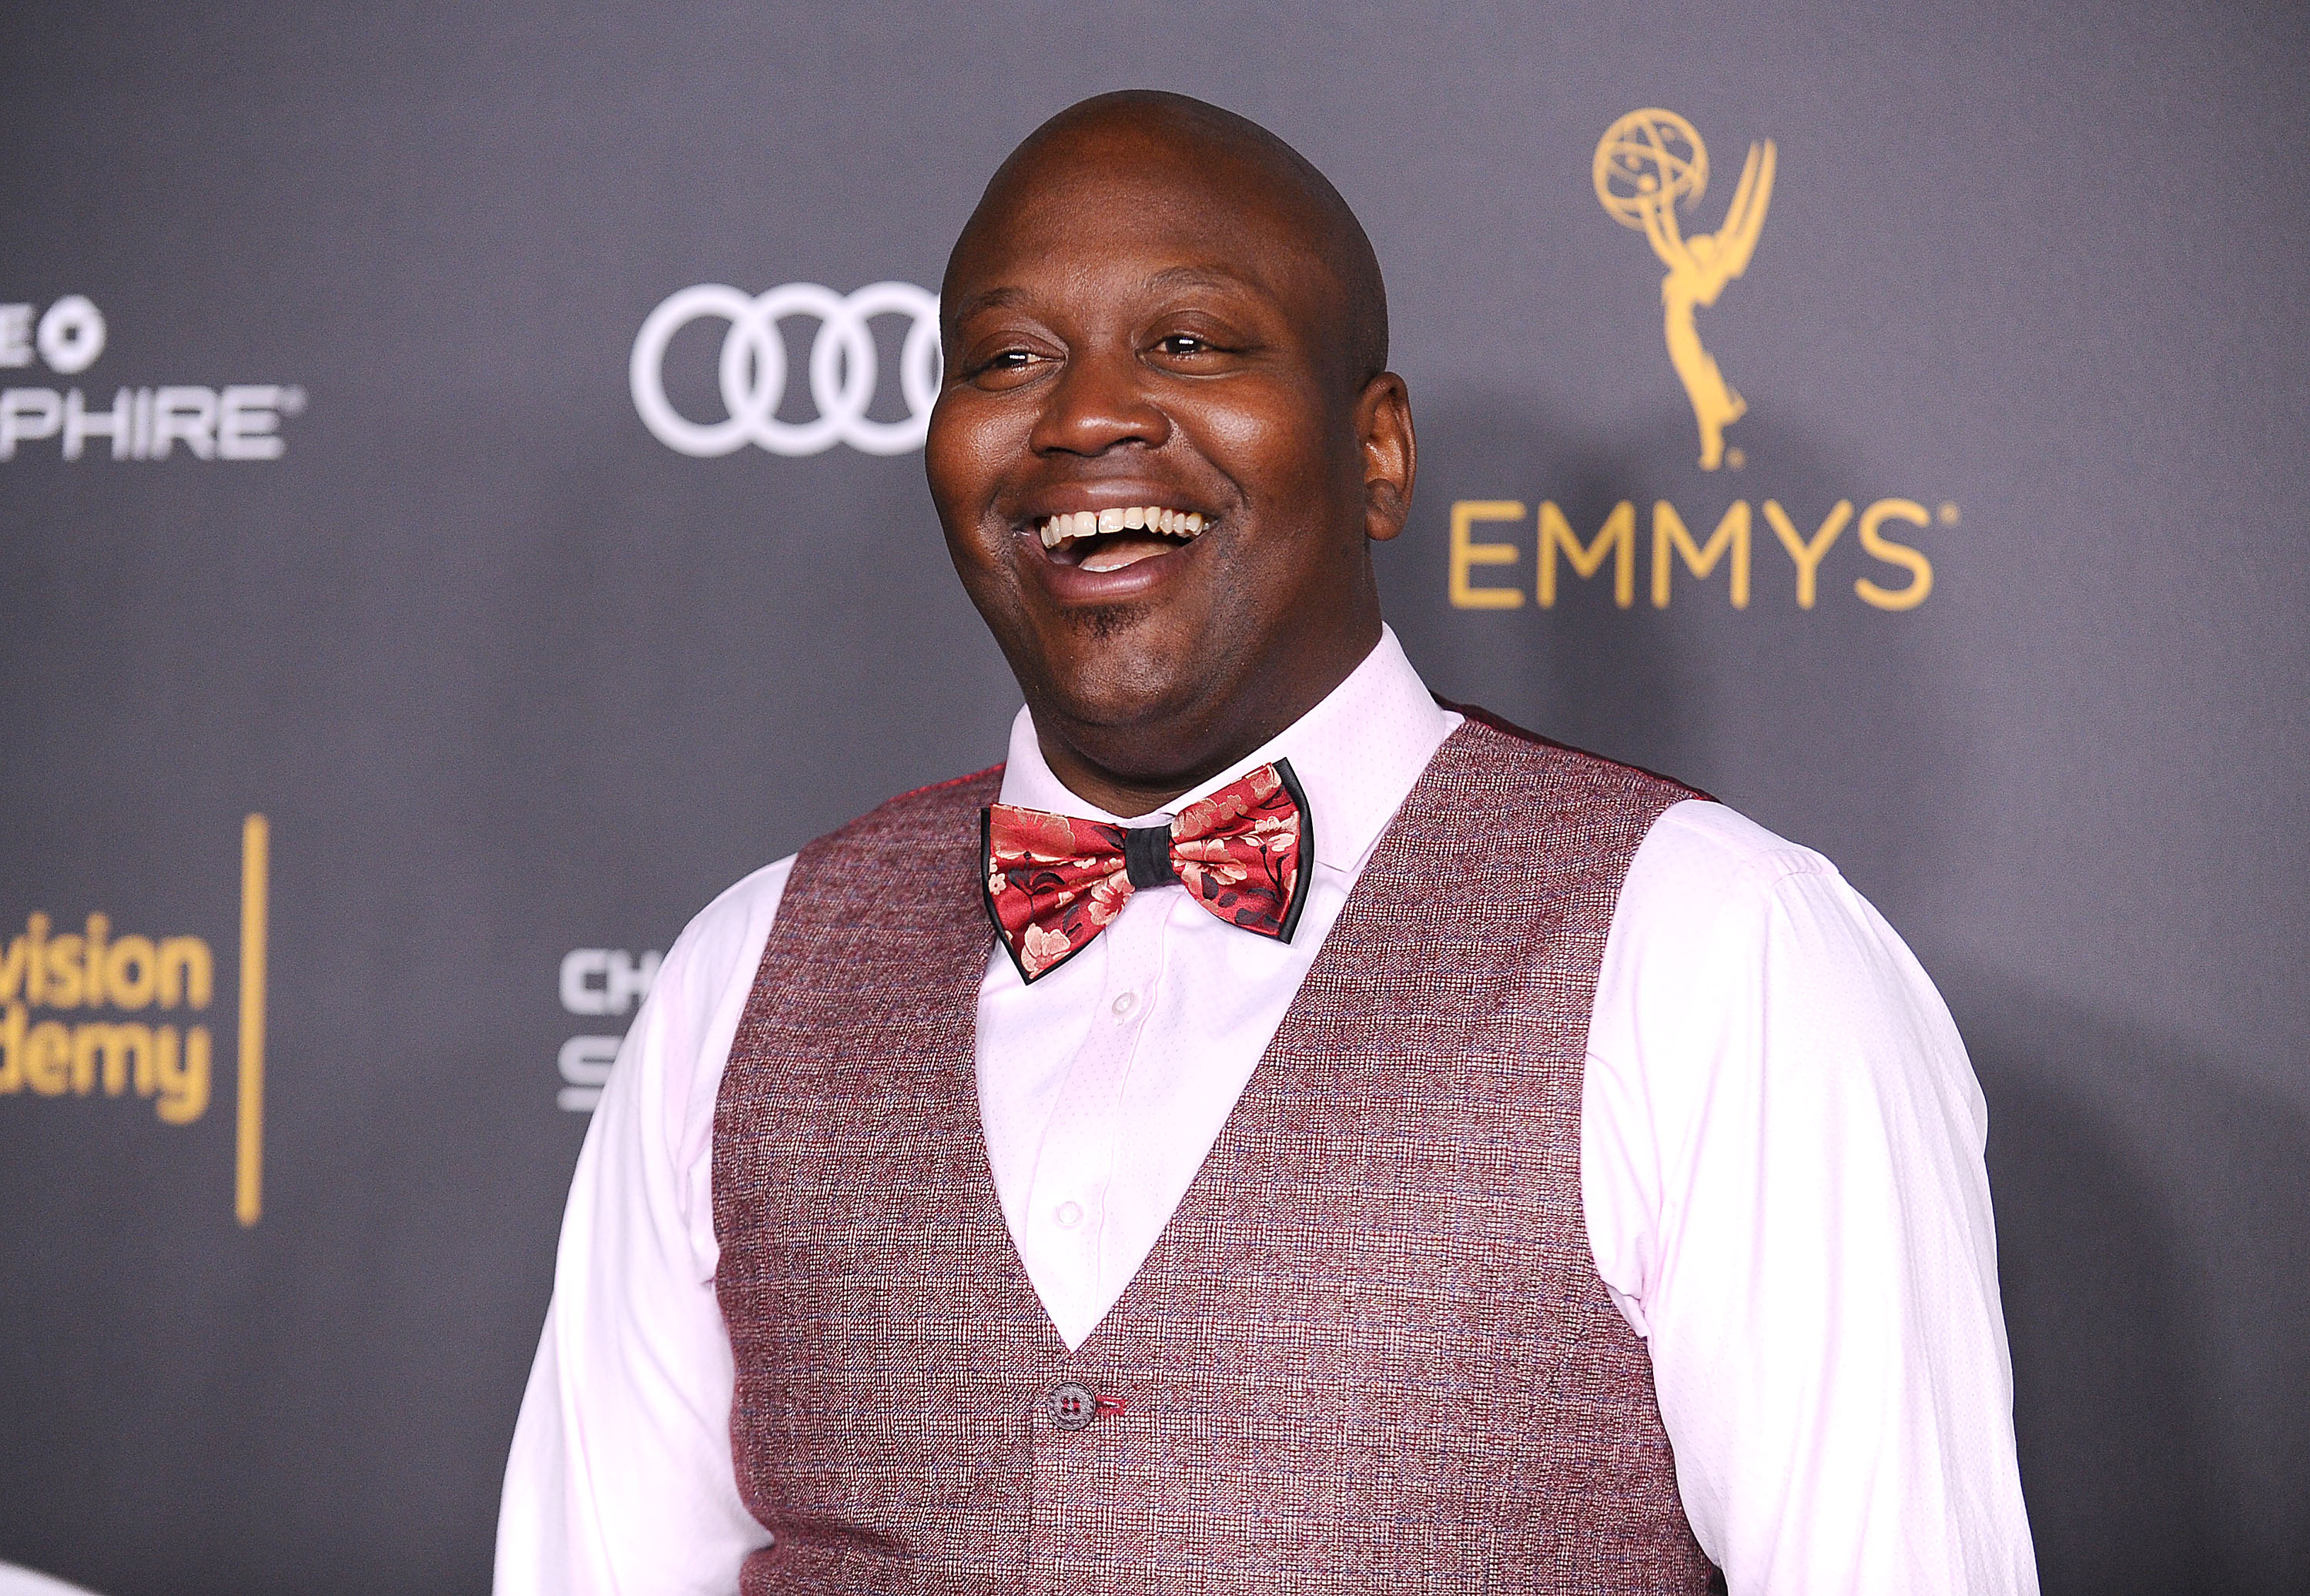 Debra Messing is going to give Tituss Burgess the NewFest Voice & Visibility Award, and we love them both SO MUCH